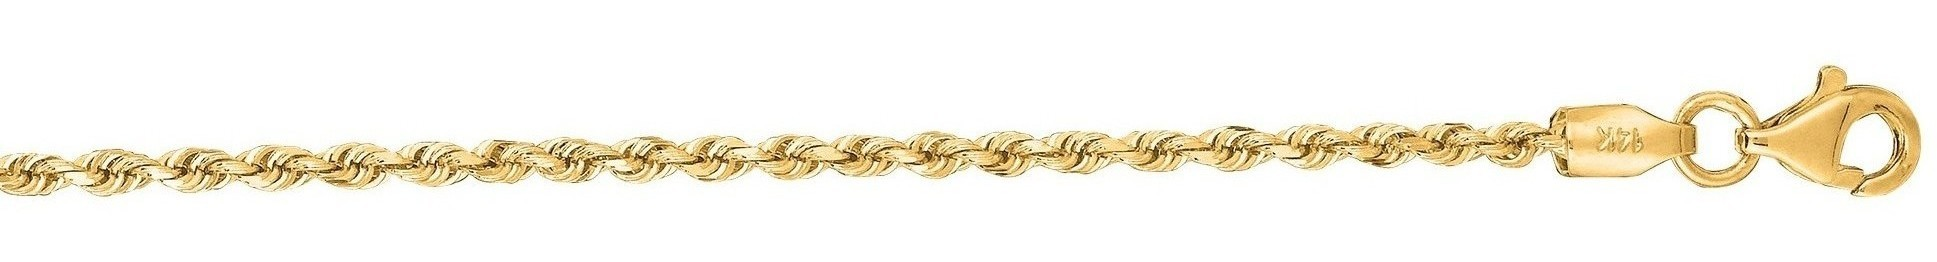 "10"" 14K Yellow Gold 2.0mm (0.08"") Polished Solid Diamond Cut Royal Rope Chain w/ Pear Shape Clasp"